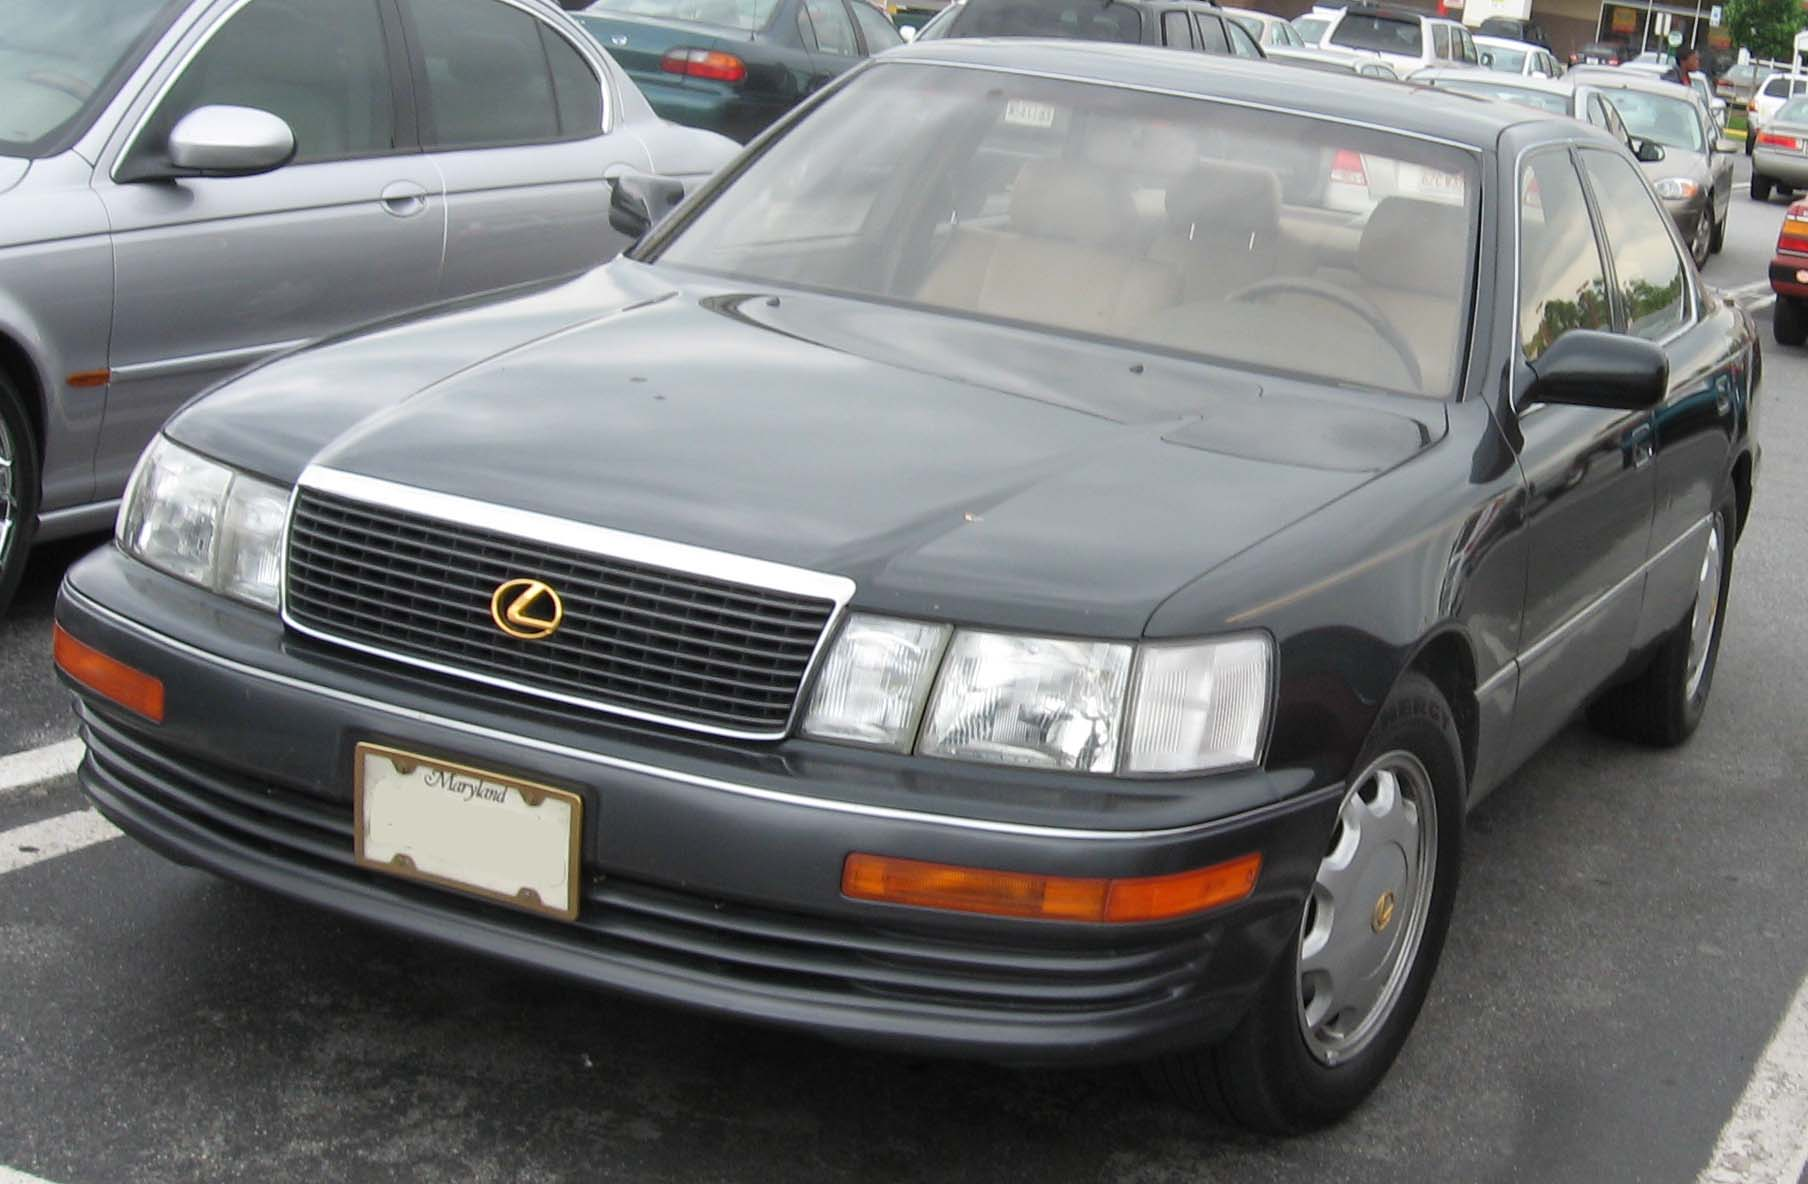 hight resolution of file 93 94 lexus ls400 jpg